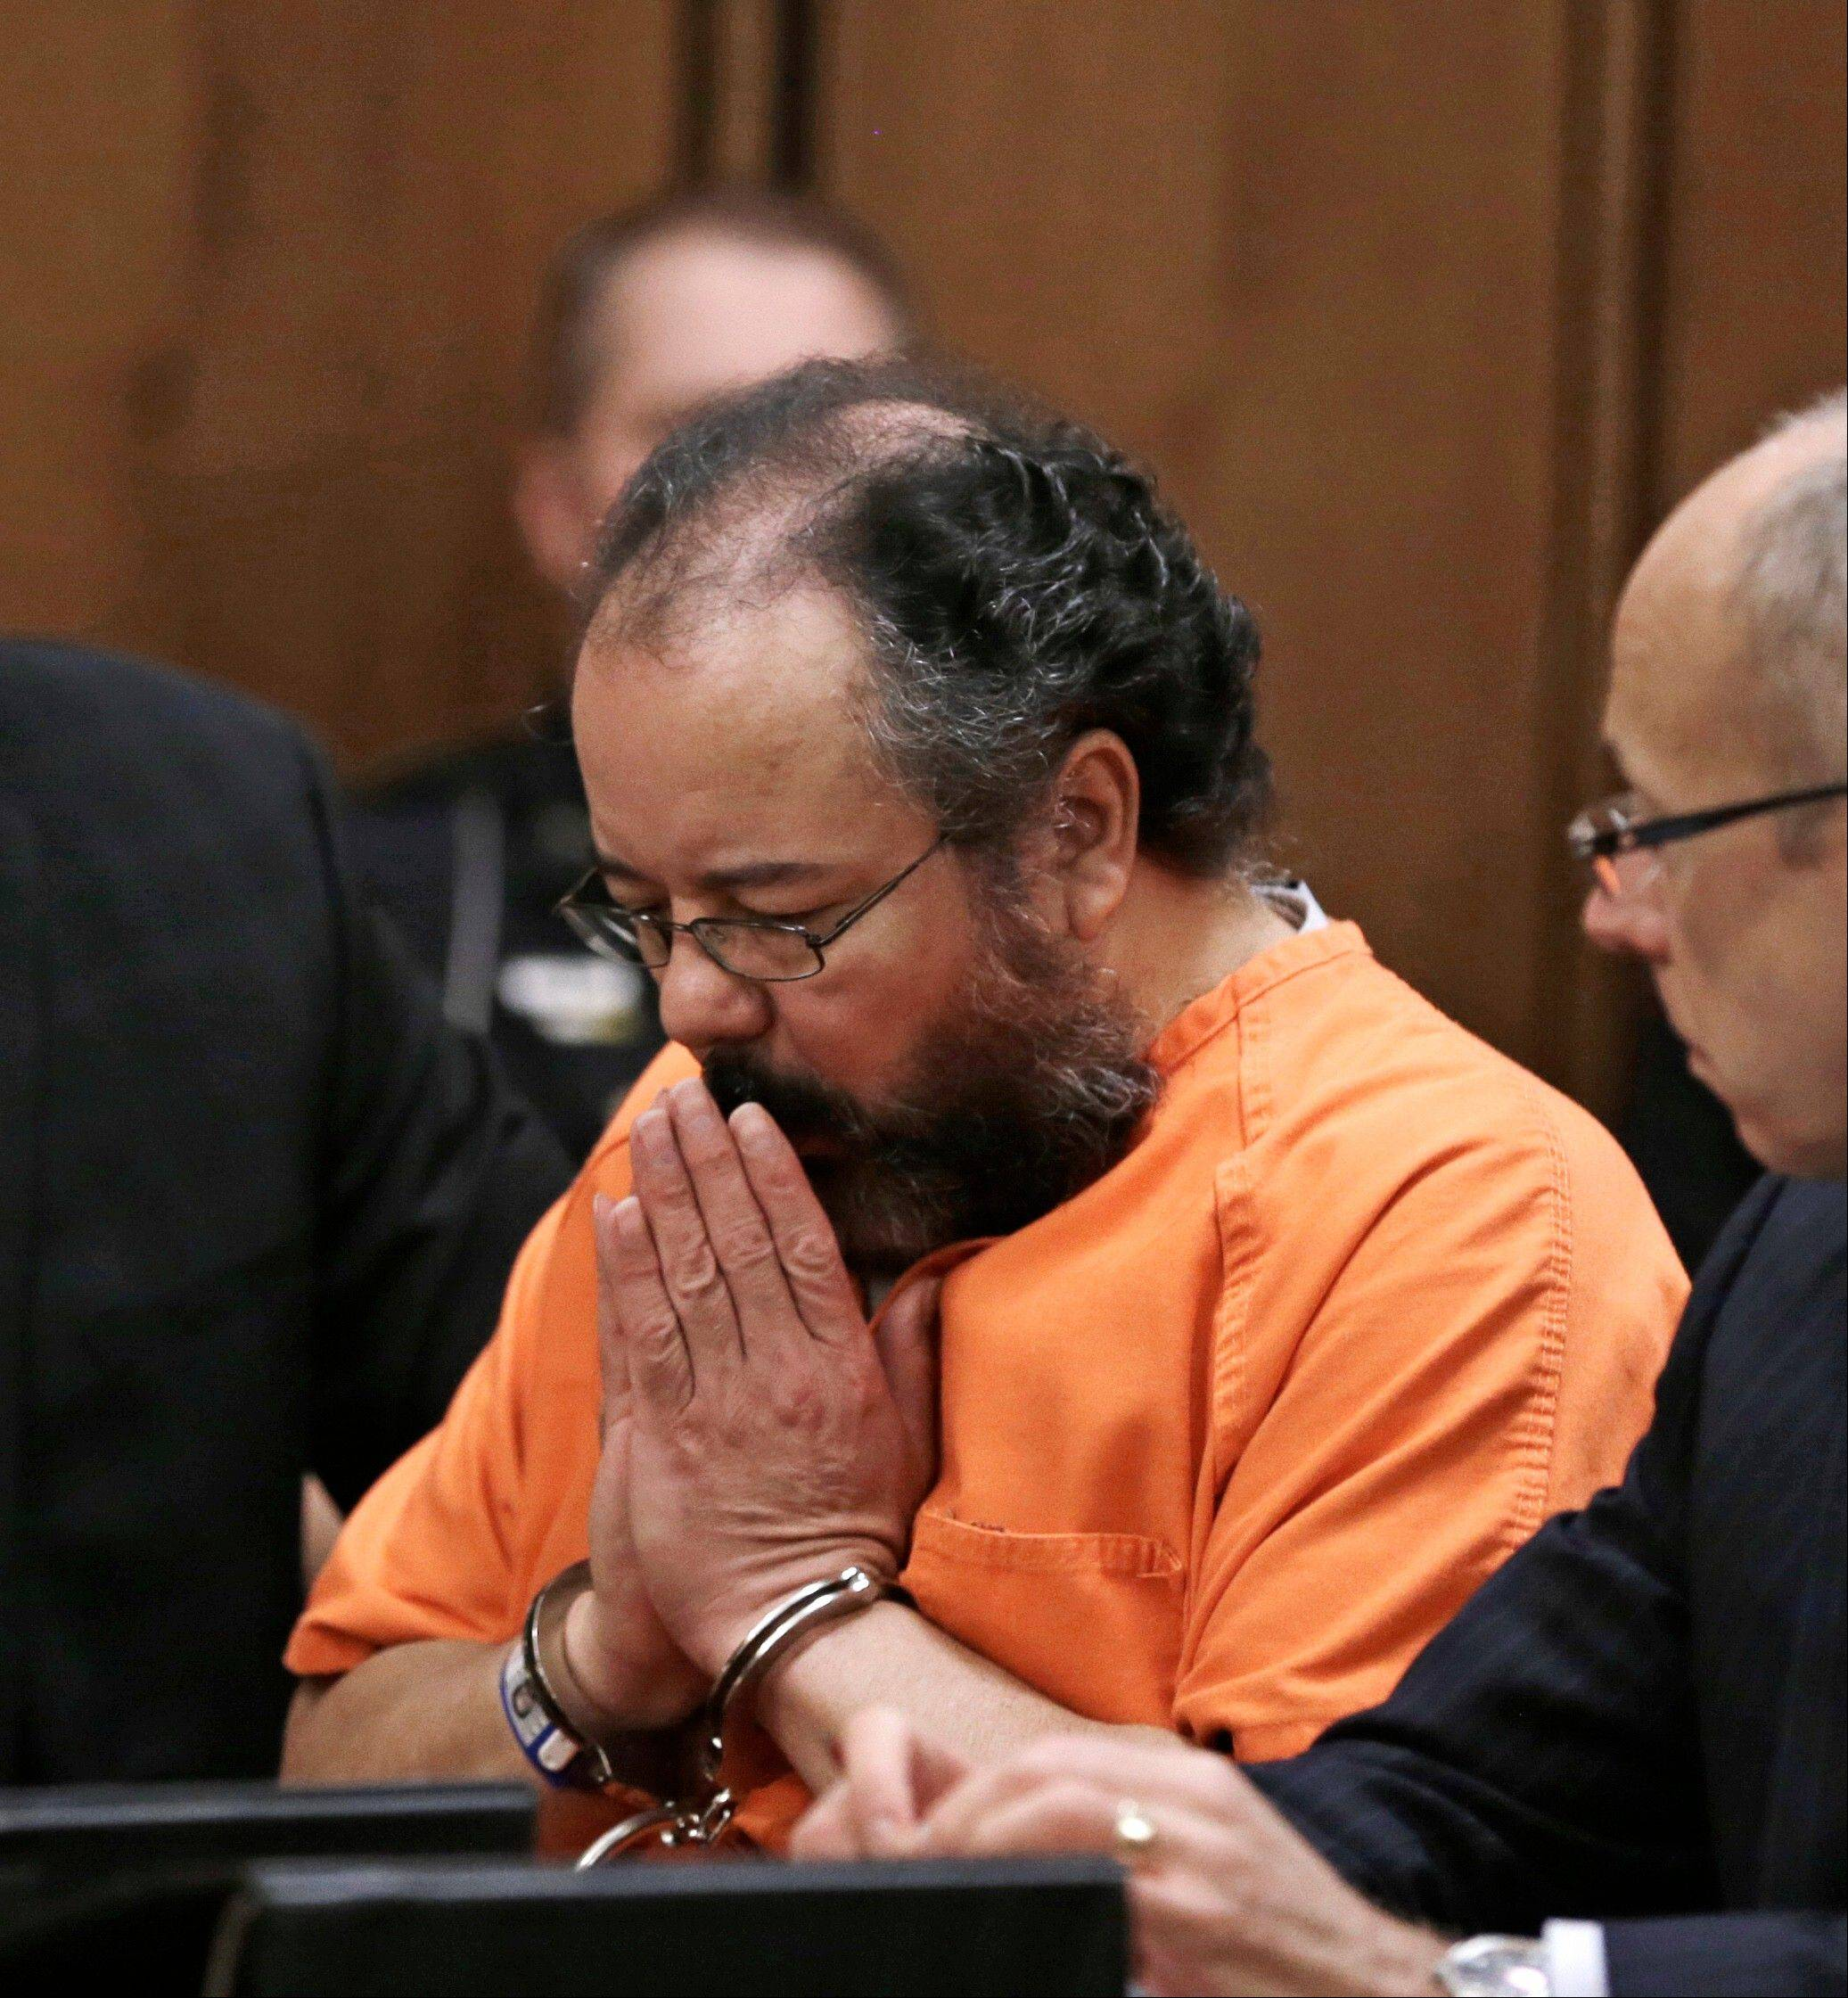 Officials: Ariel Castro commits suicide in prison